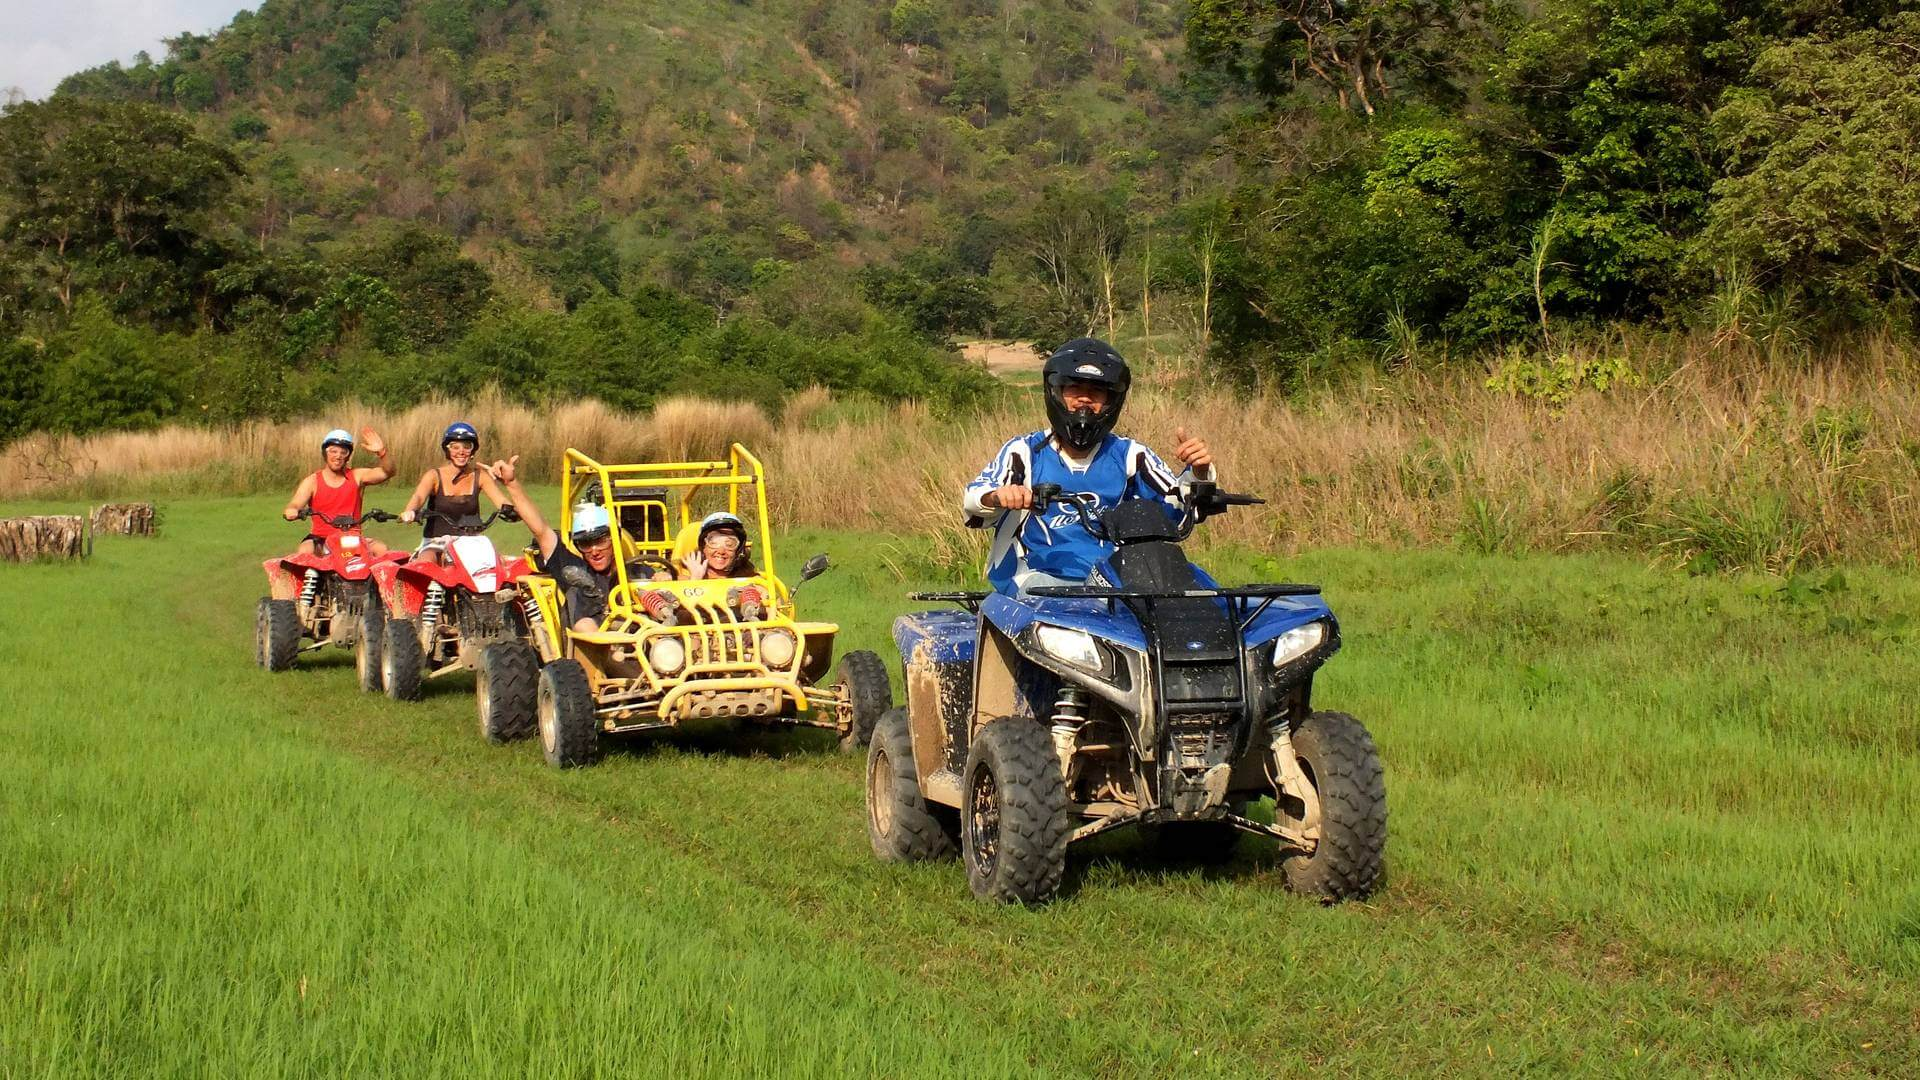 Reasons To Consider A Used ATV Versus New